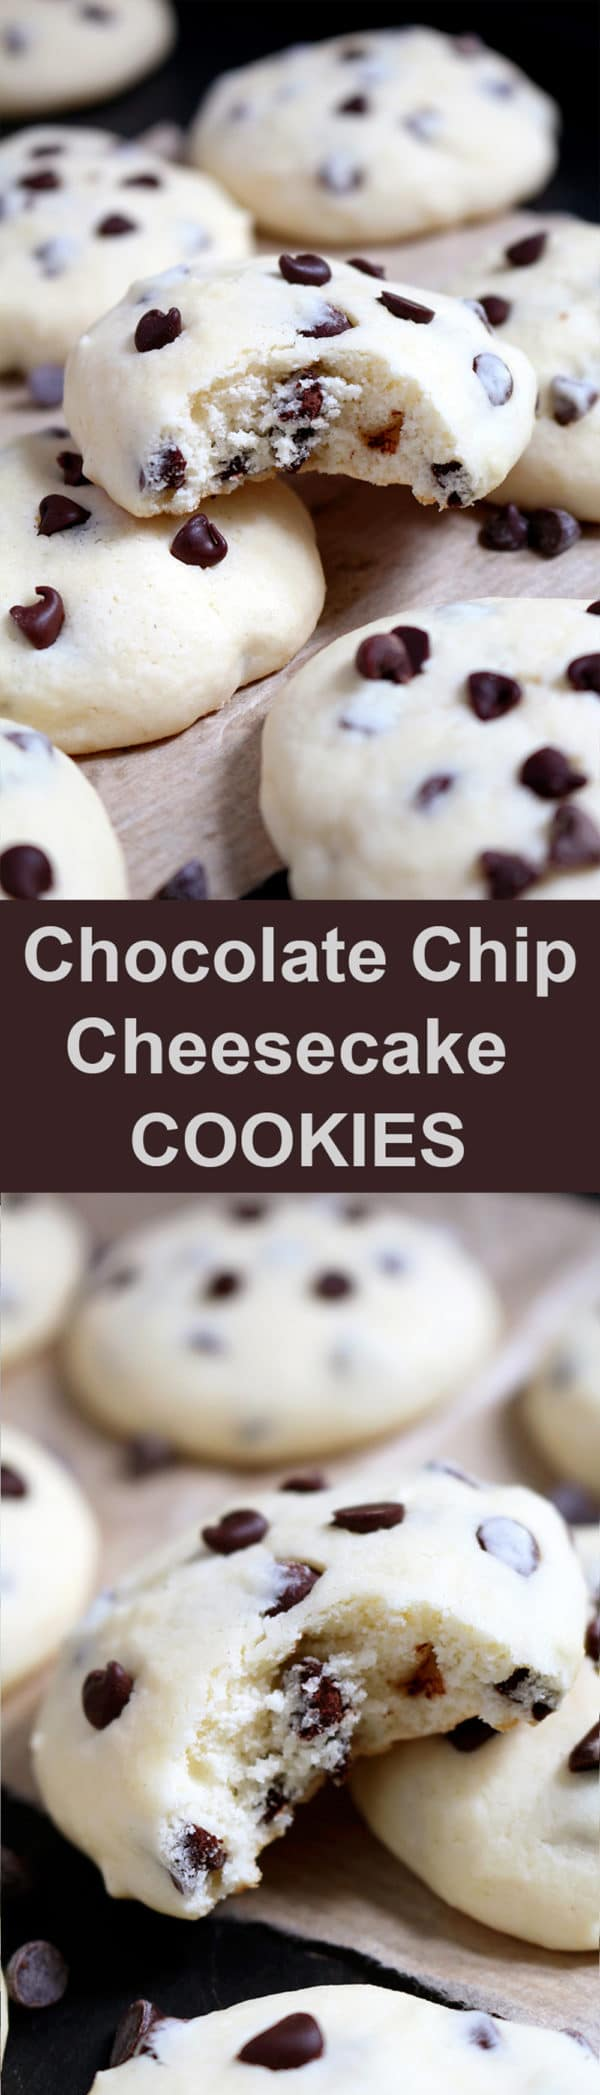 Chocolate Chip Cheesecake Cookies are simple, light and delicious, my favorite cookie recipe ♥